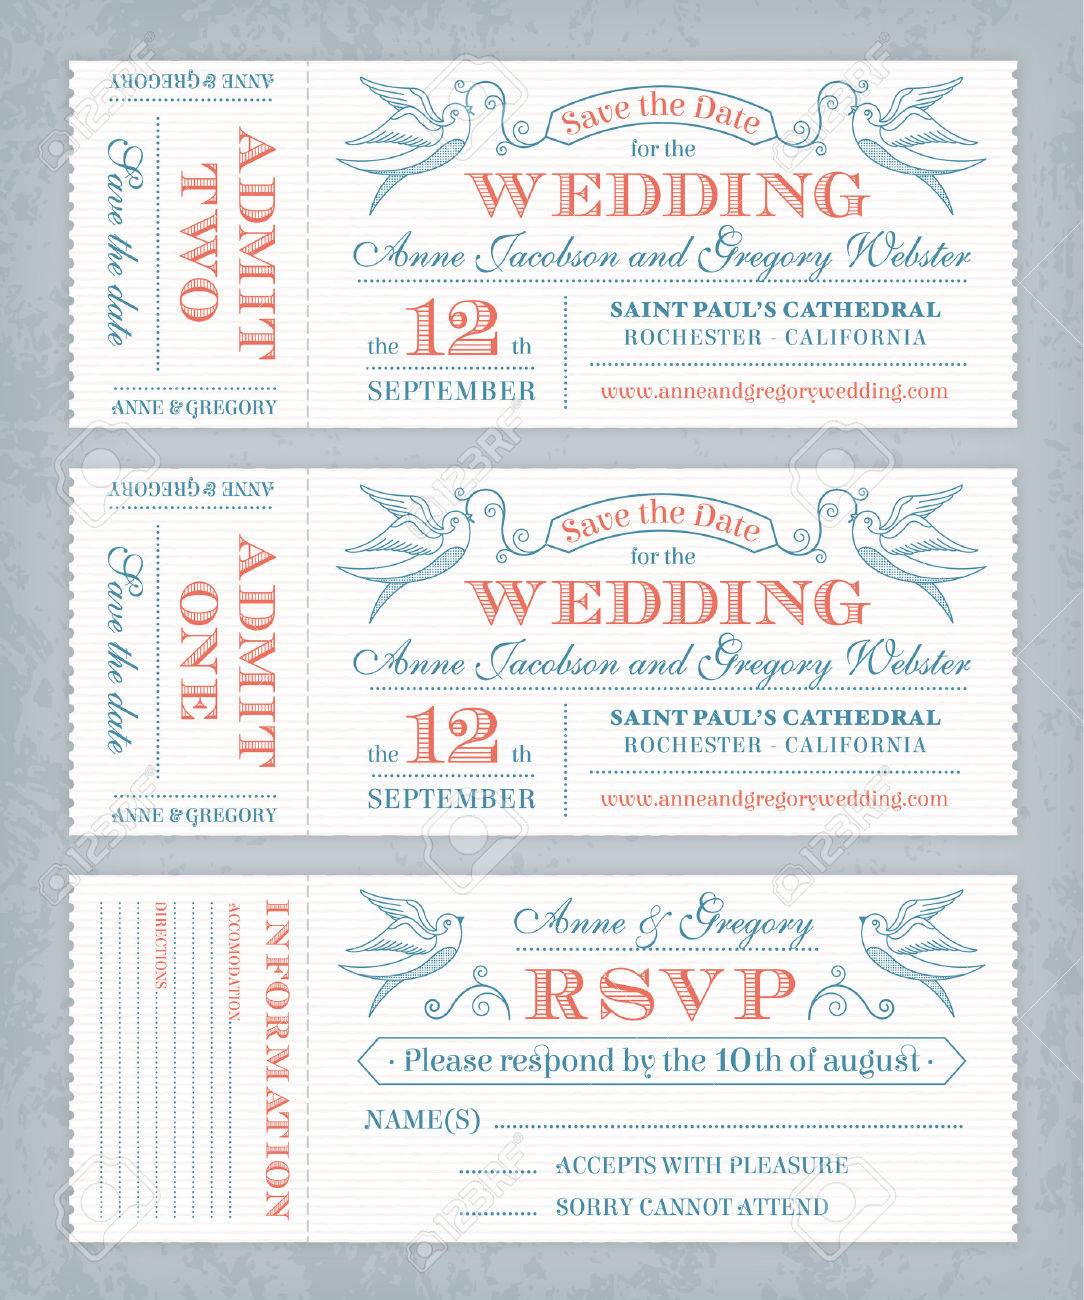 2 345 raffle ticket stock vector illustration and royalty raffle ticket 3 hi detail vector grunge tickets for wedding invitations and save the date